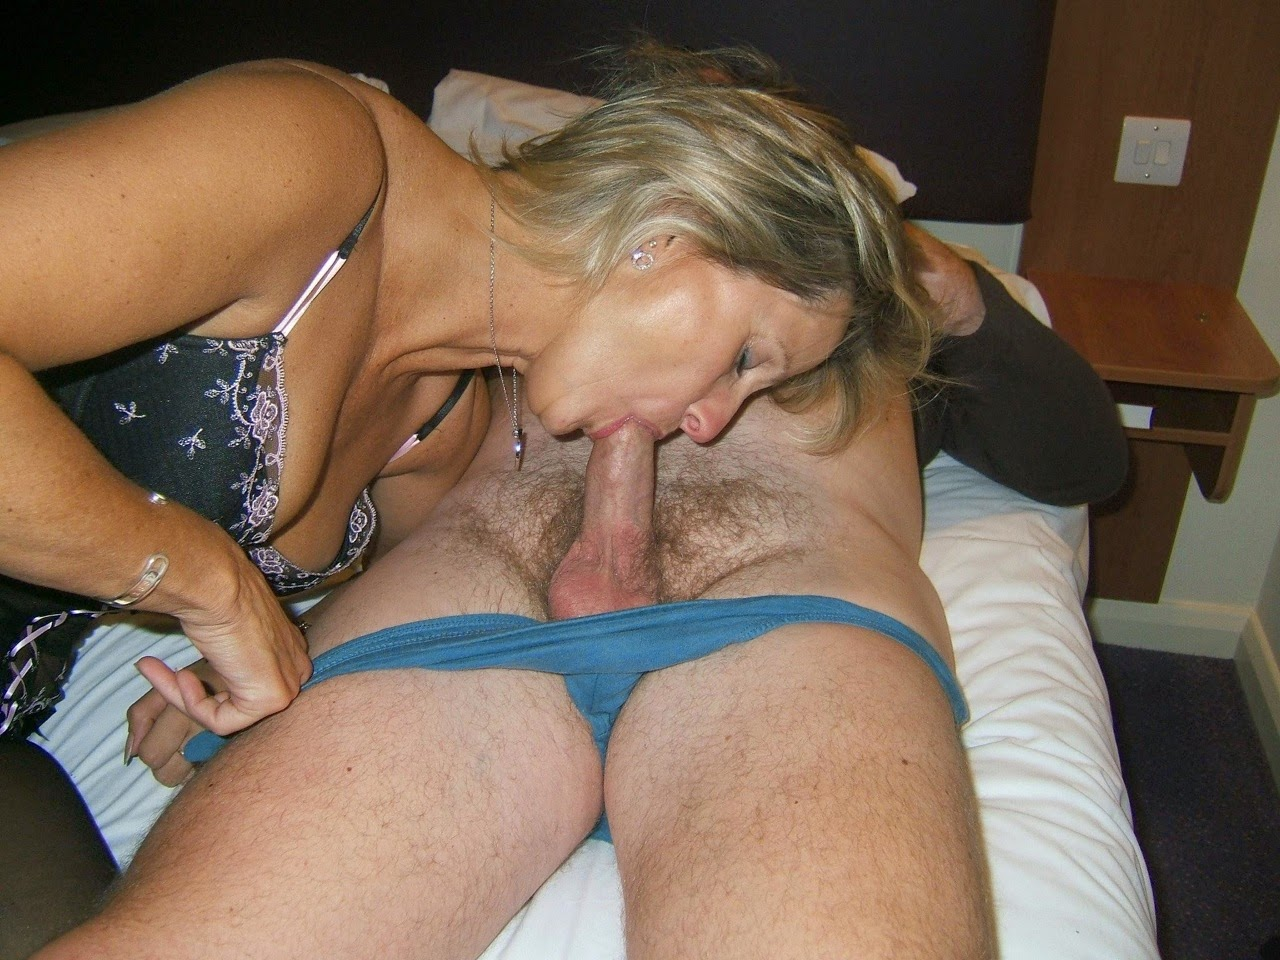 Cock sucking cheating wife porn free xxx galeries